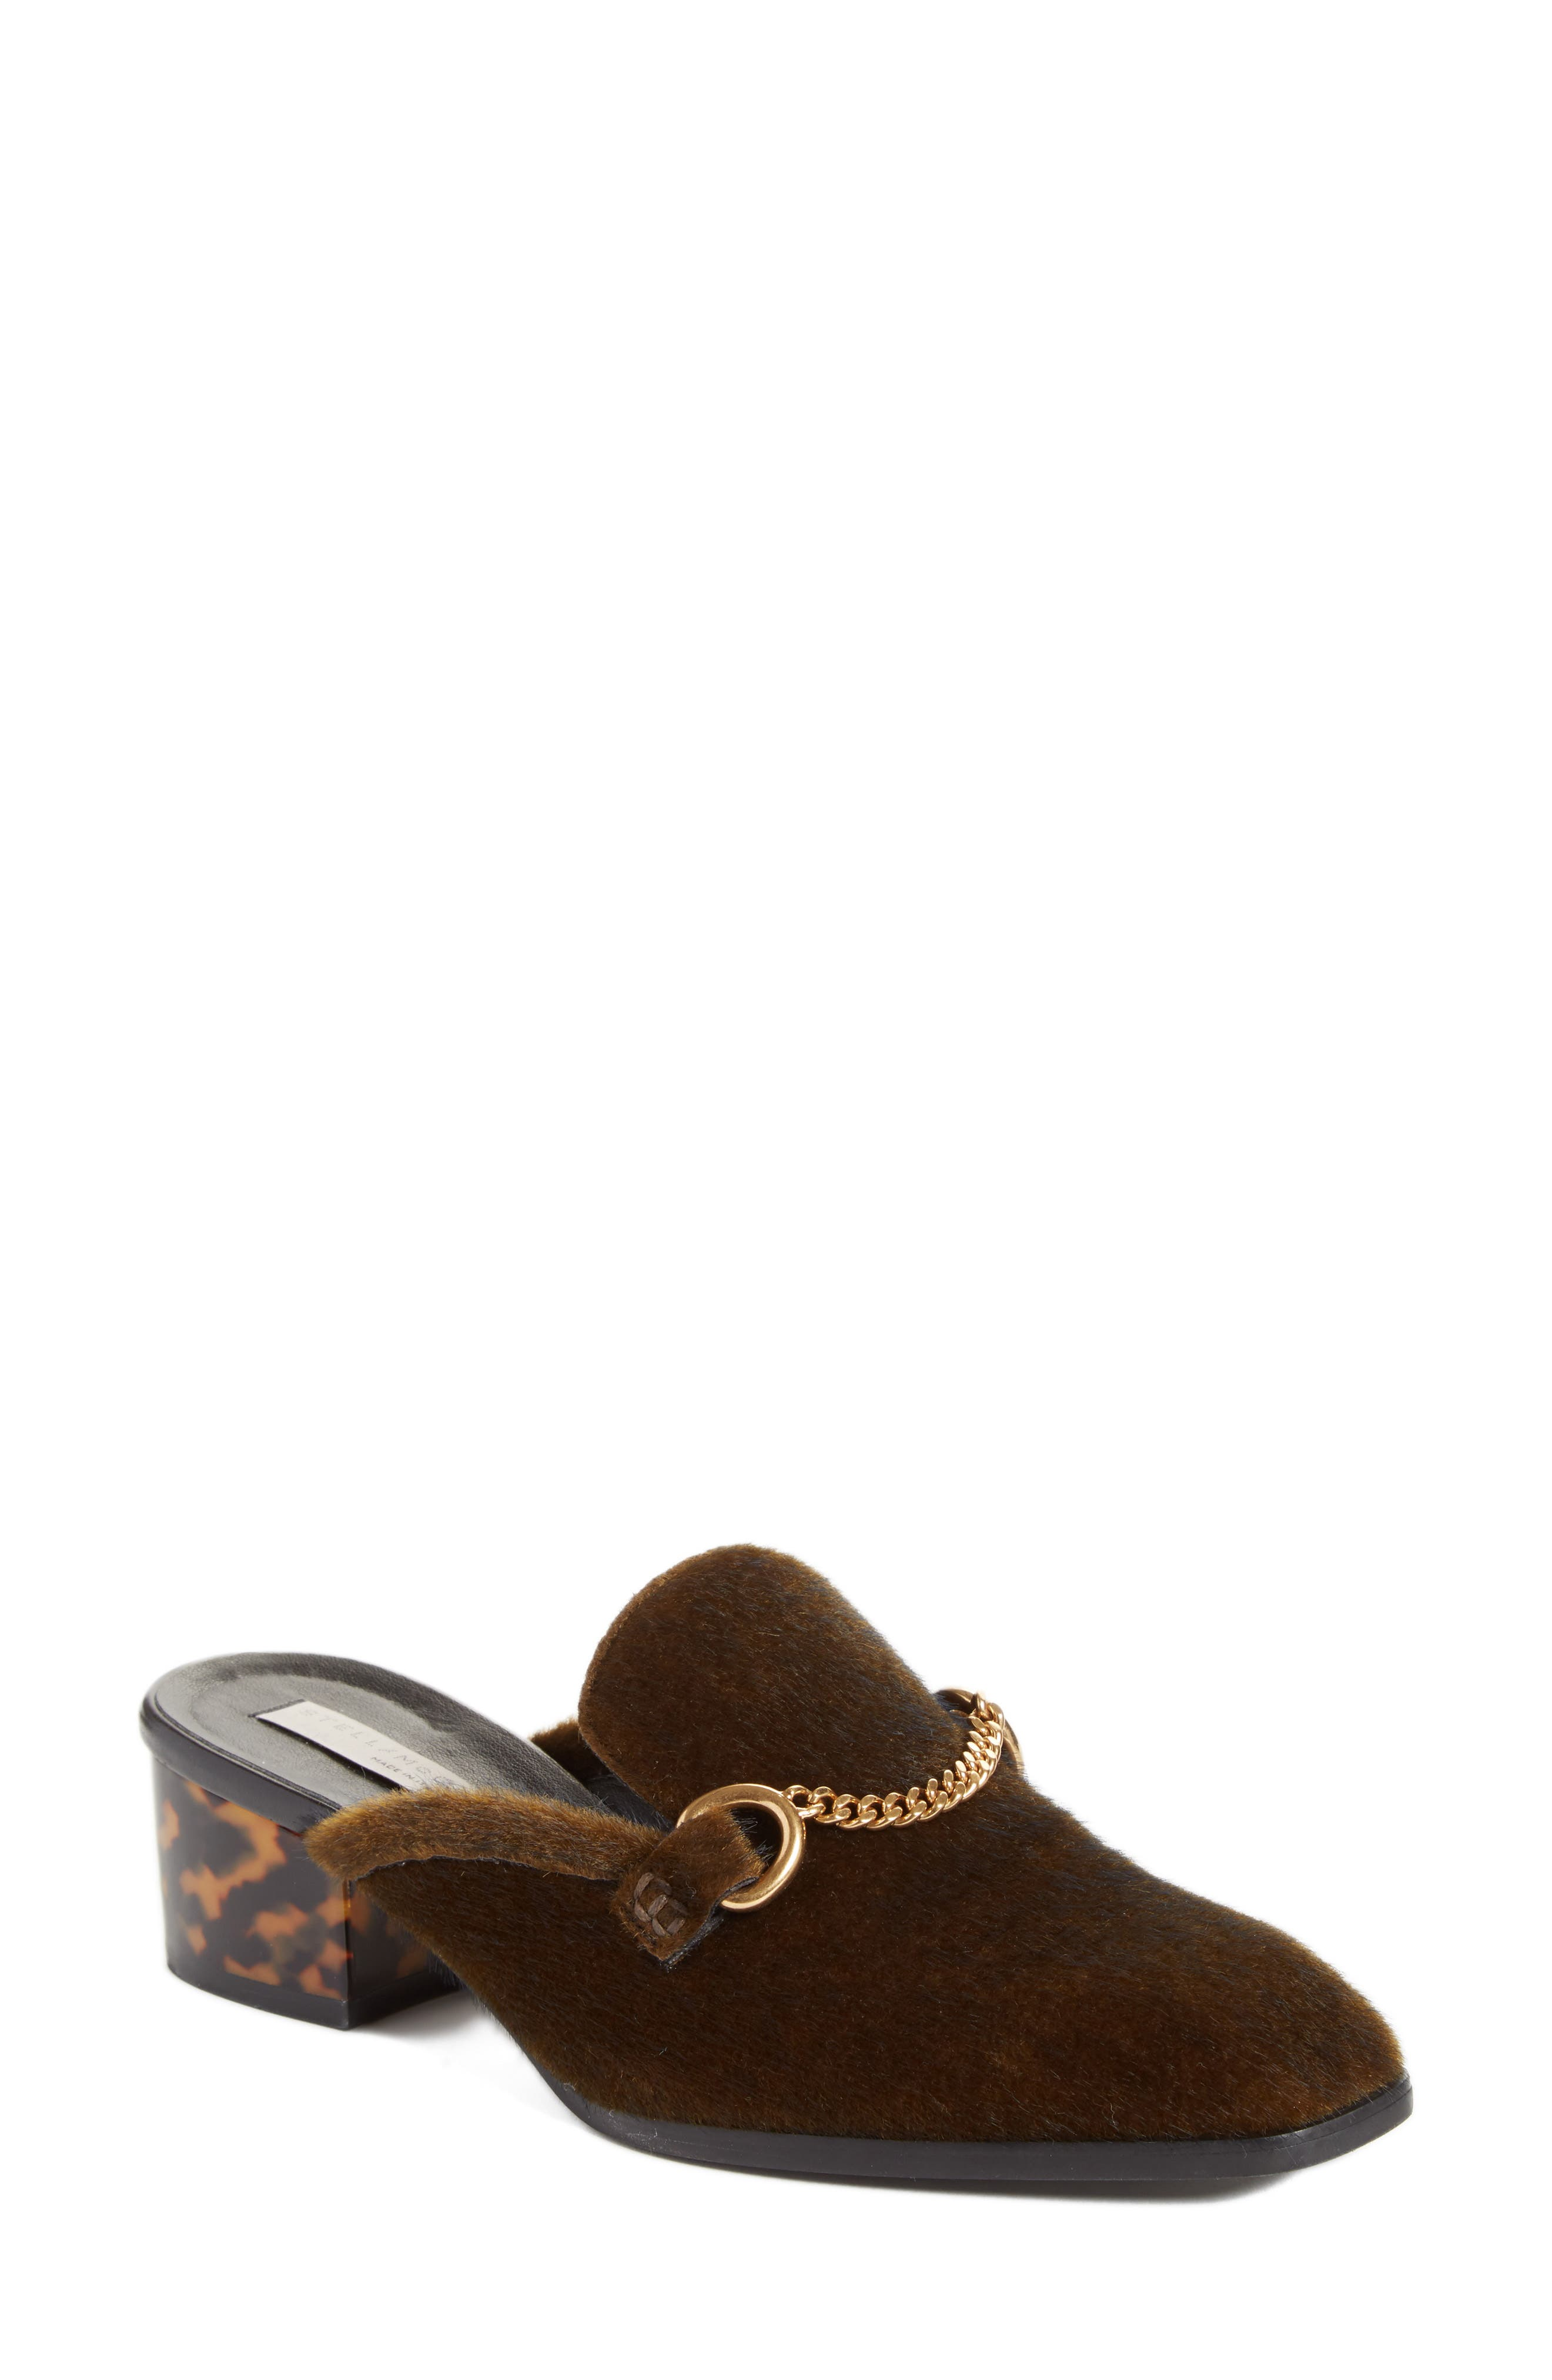 Stella McCartney Chain Loafer Mule (Women)